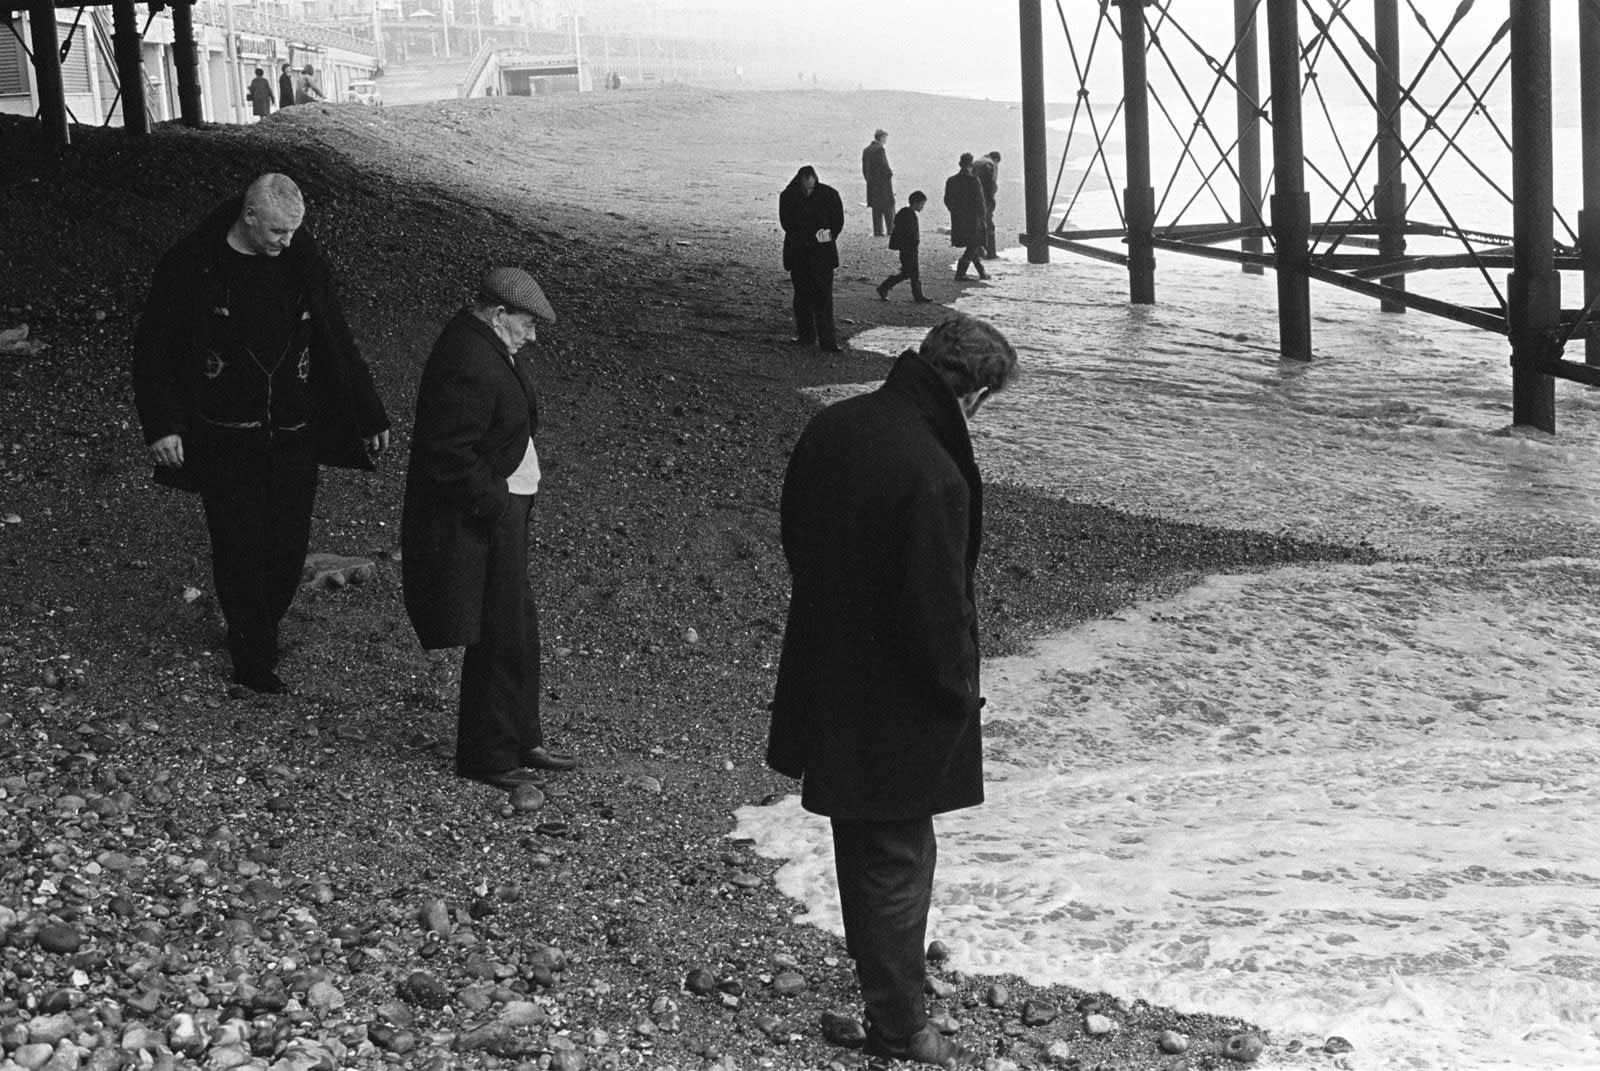 Homer Sykes, Blacksanding, sunday morning, under Brighton Pier looking for coins that are washed up, Brighton, Sussex, 1970